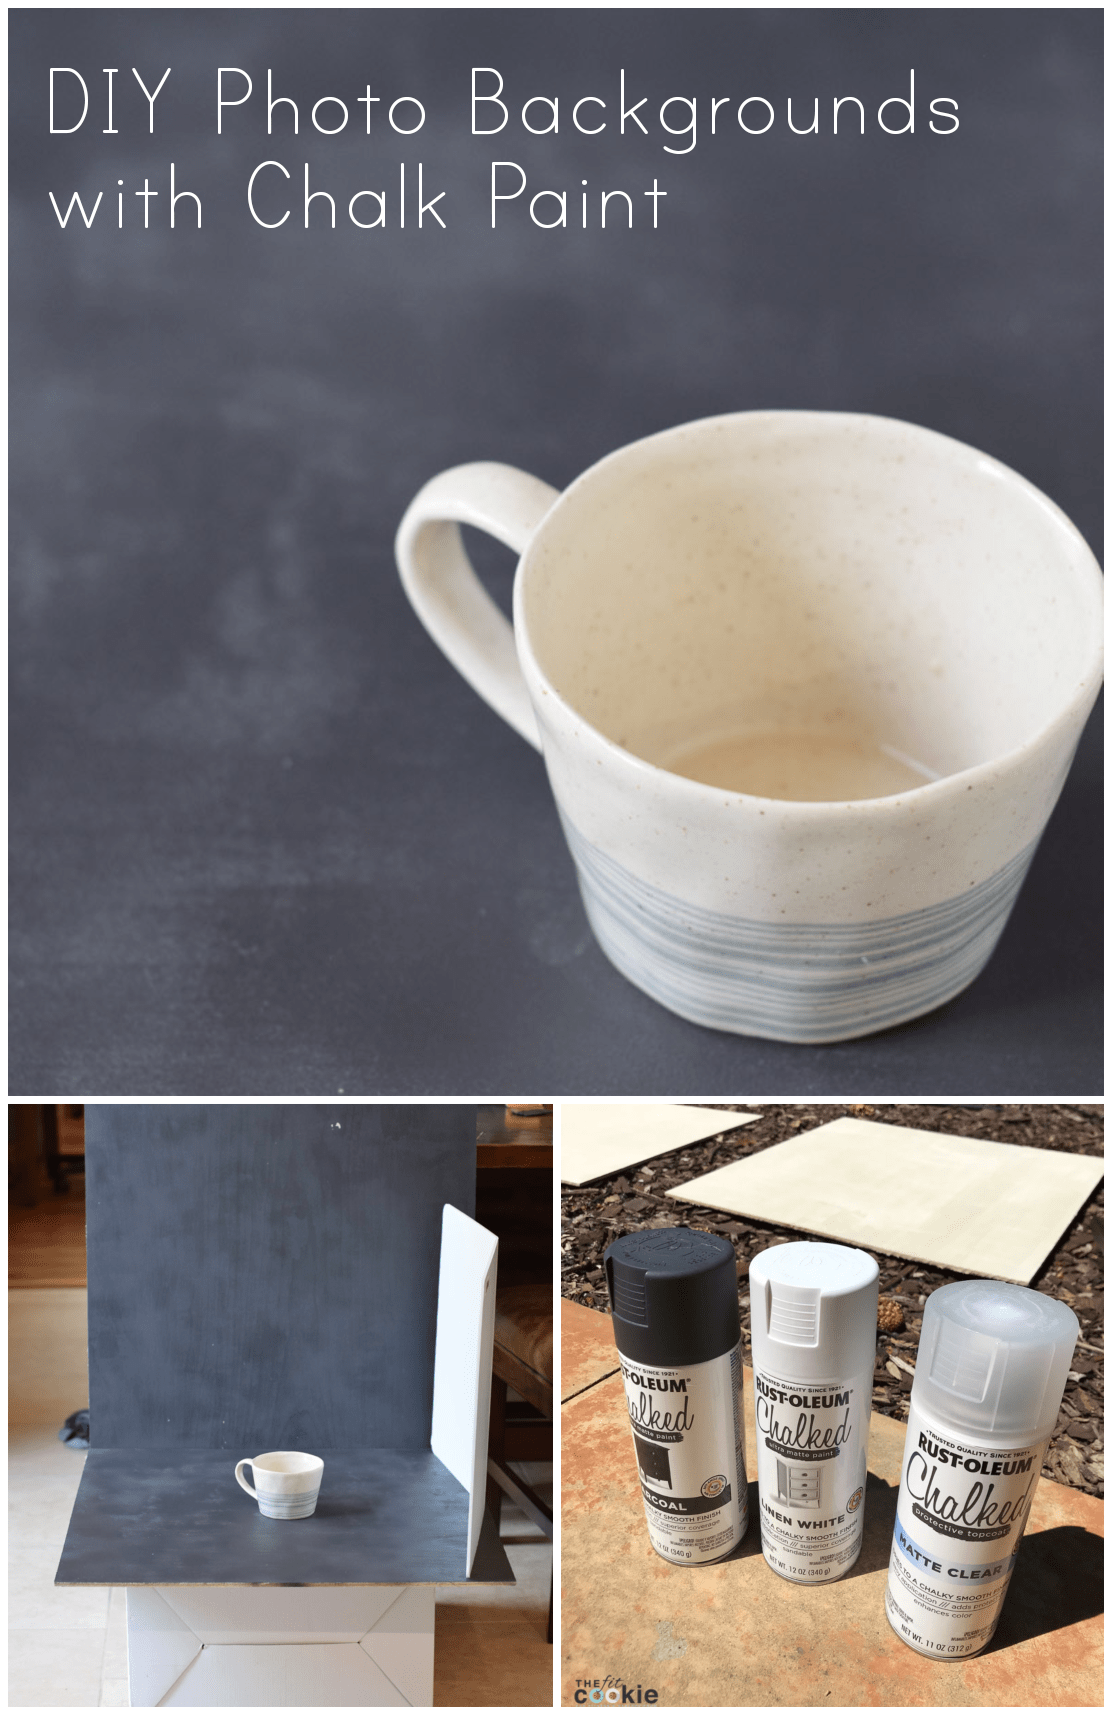 If you're a food blogger on a budget, then finding great backgrounds can be tough. But no worries: you can make your own beautiful and budget-friendly photo backgrounds with chalk paint! - @TheFitCookie #DIY #photography #chalkpaint